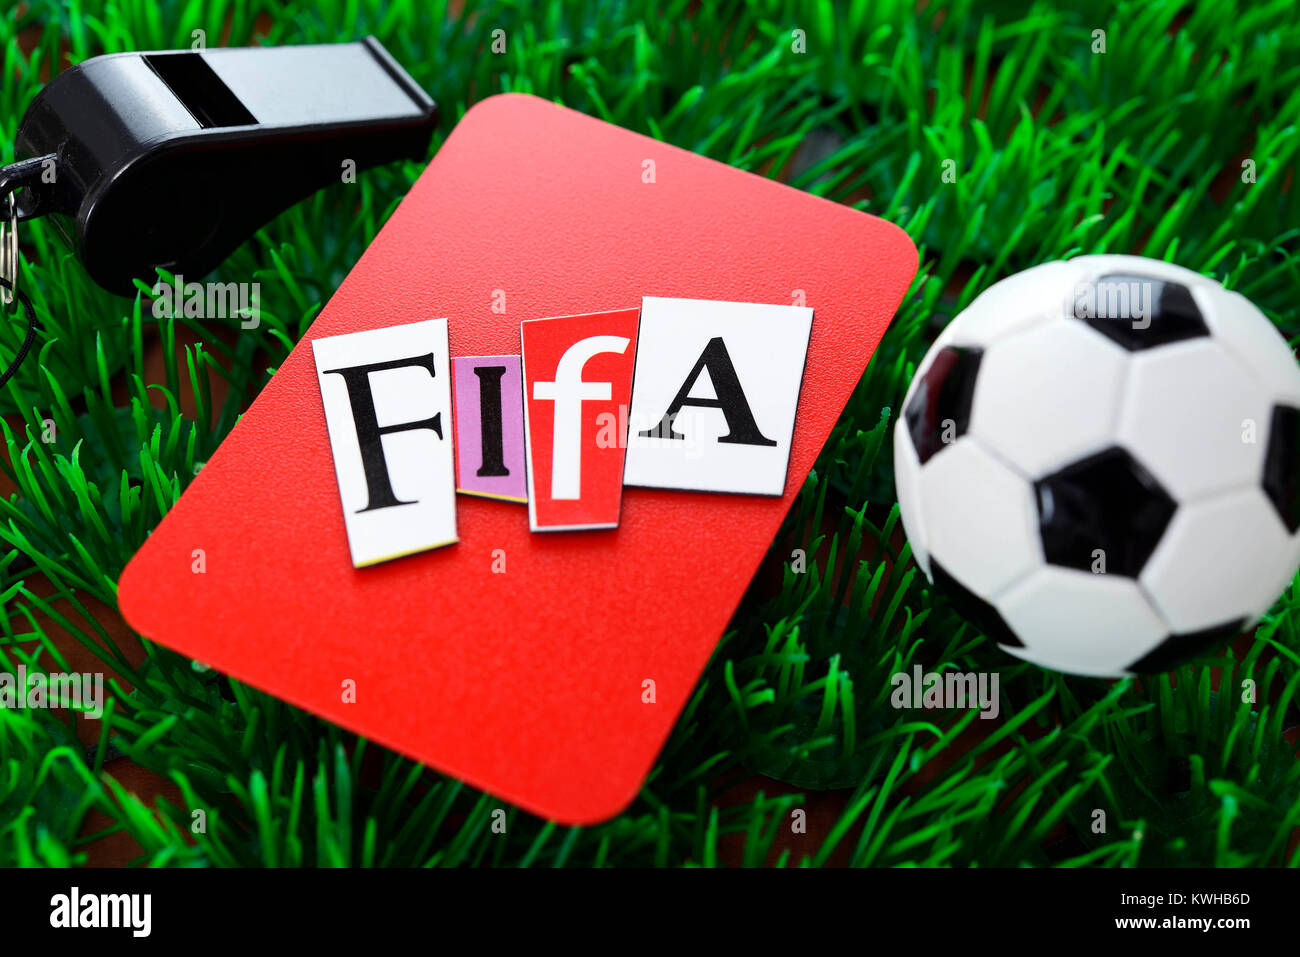 Miniature football and red map, Fifa scandal, Miniaturfußball und rote Karte, Fifa-Skandal - Stock Image